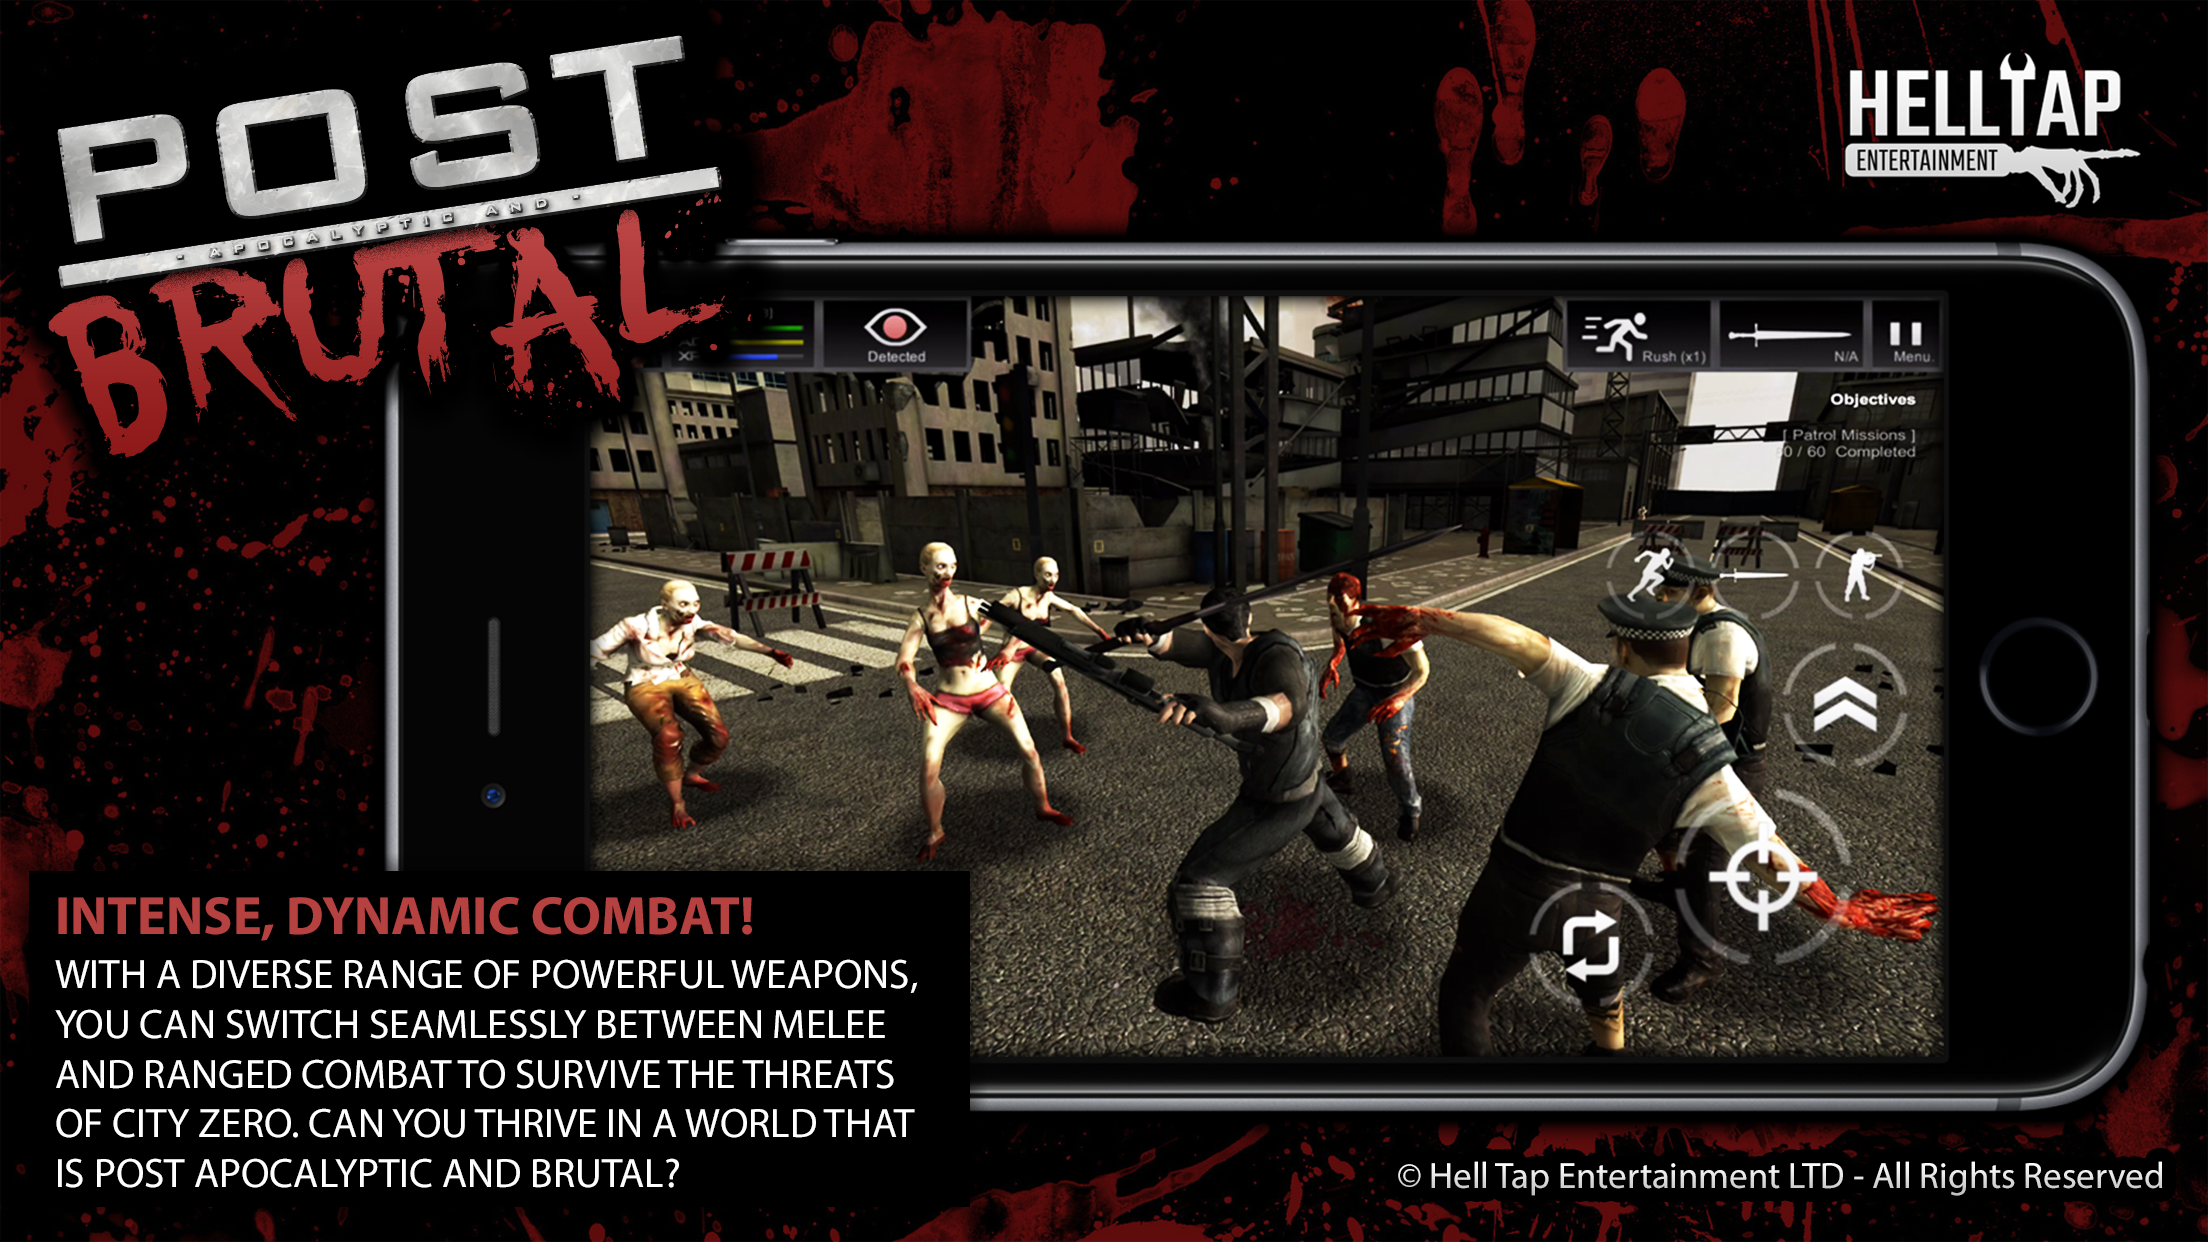 Post Brutal - Intense, Dynamic Combat!